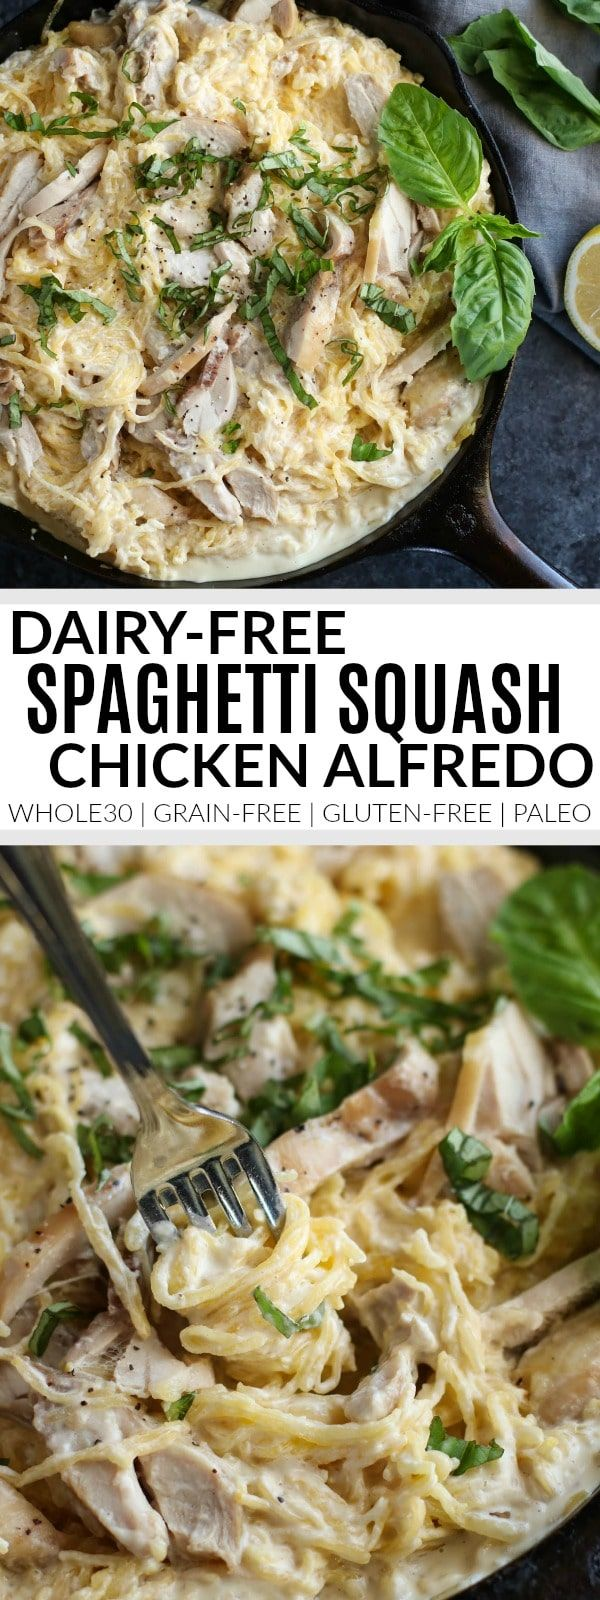 Dairy-free Spaghetti Squash Chicken Alfredo - The Real Food Dietitians